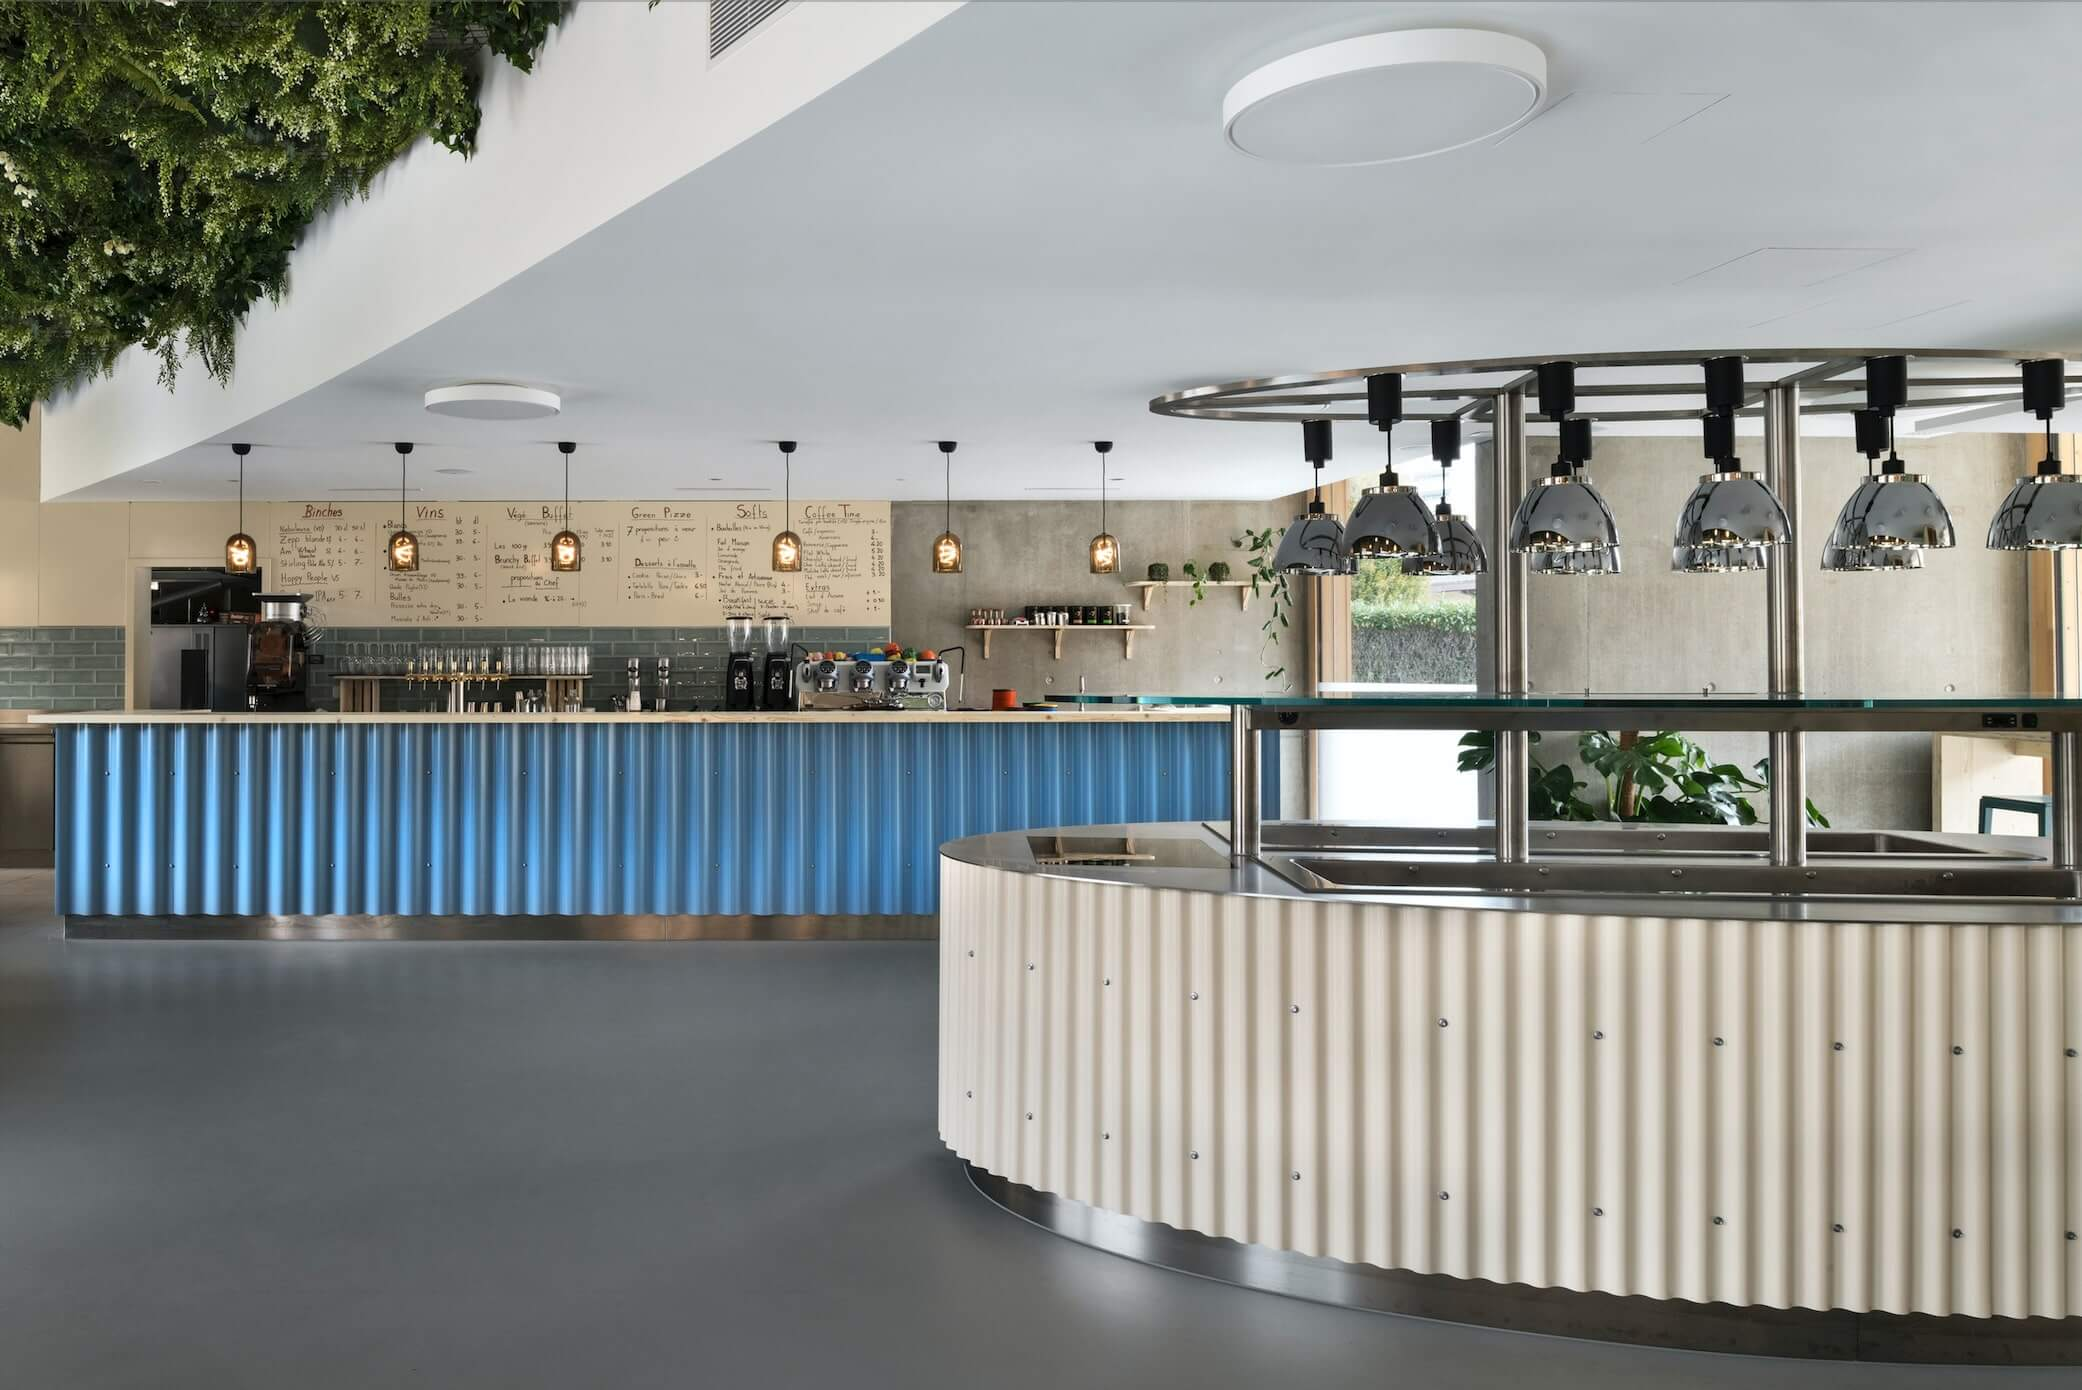 All the design of the furniture of the restaurant uses corrugated iron